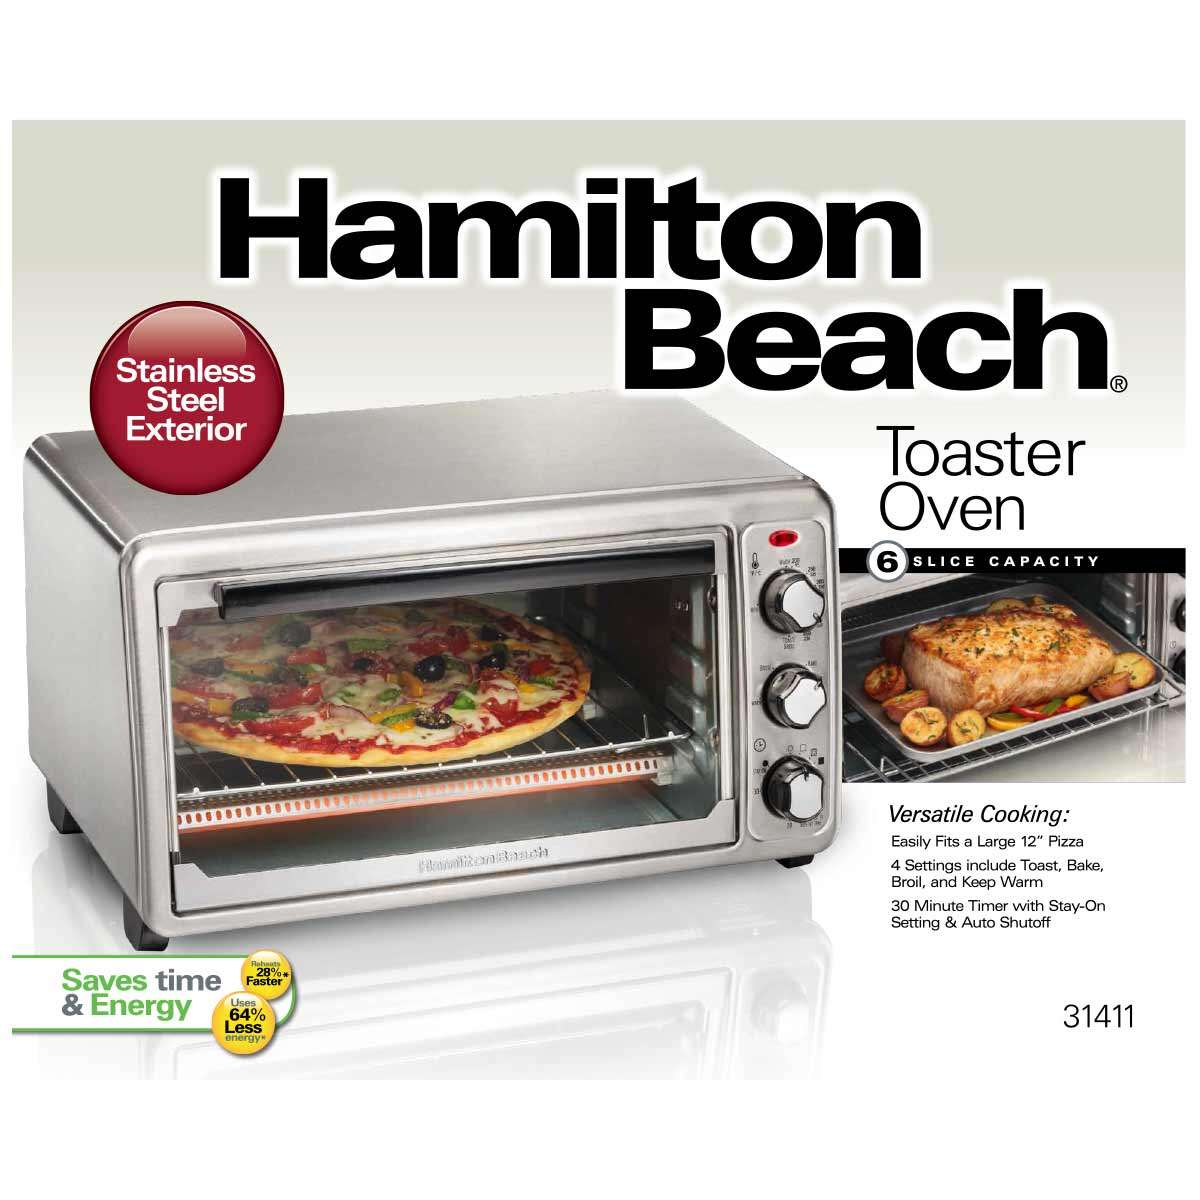 bake amazon toaster wh nonstick large features toast broiler compact keep oven com cuisinart beautiful bi hands with easy clean slide out and free rack broil warm auto sunroom